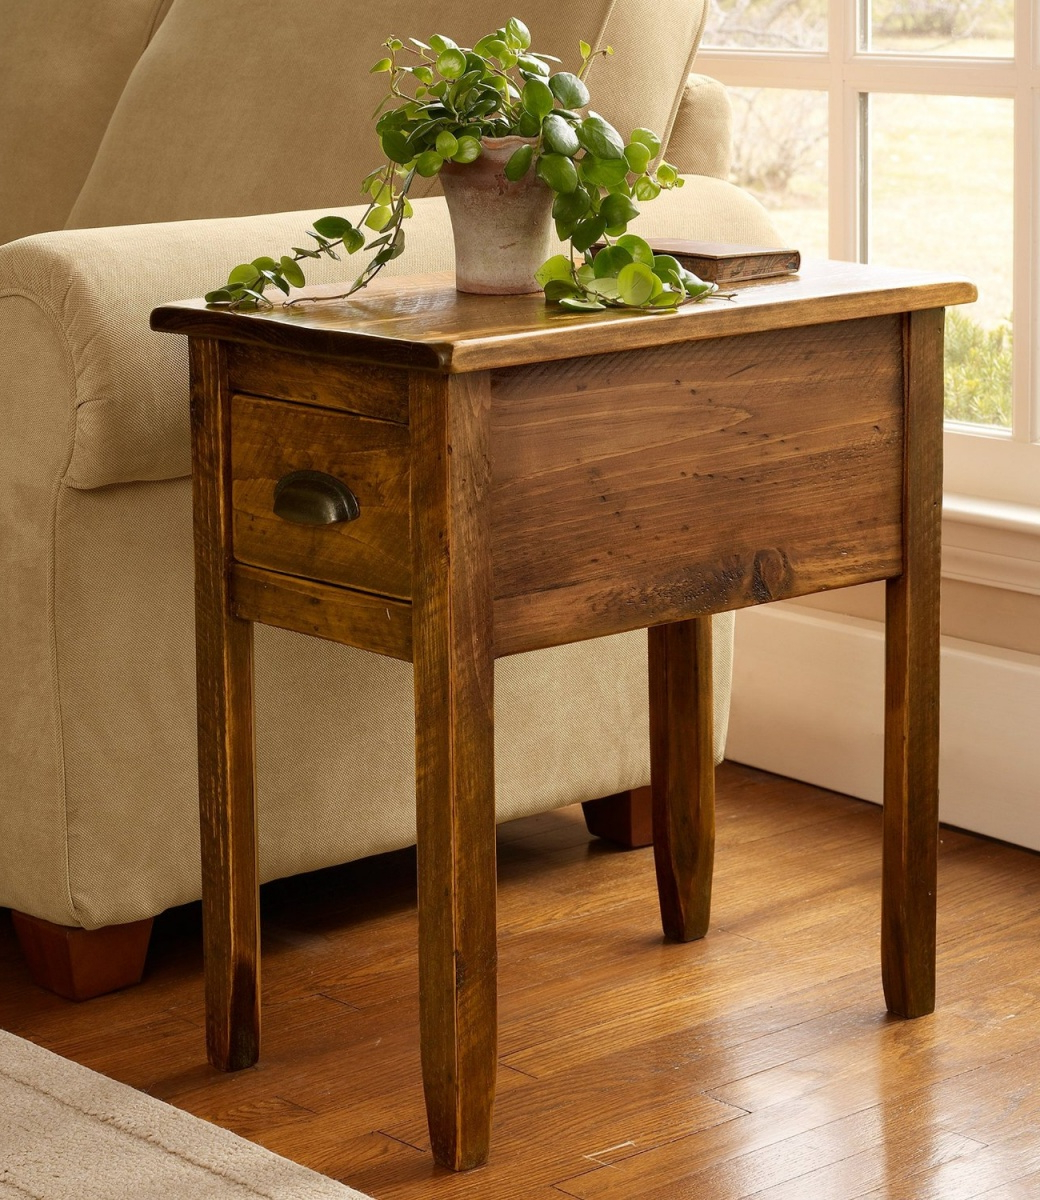 Side Table Idea Side Tables For Living Room Ideas For Small Spaces Roy